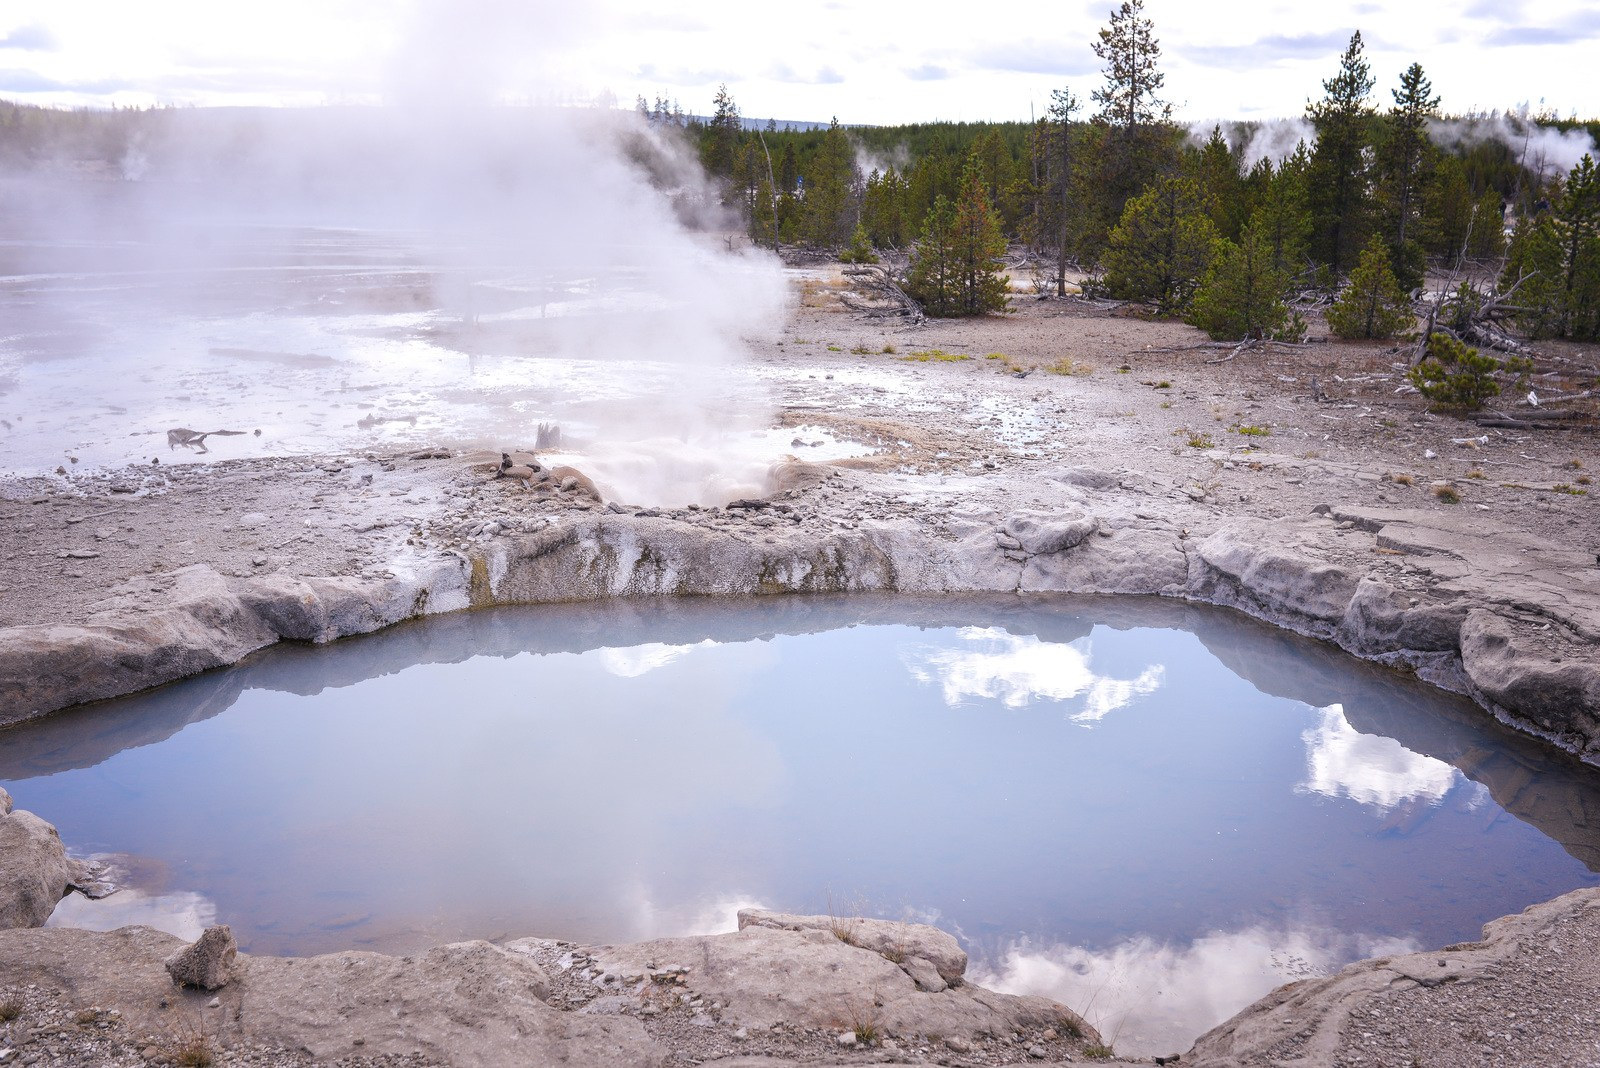 Sources d'eau chaude, Norris Geyser Basin Yellowstone